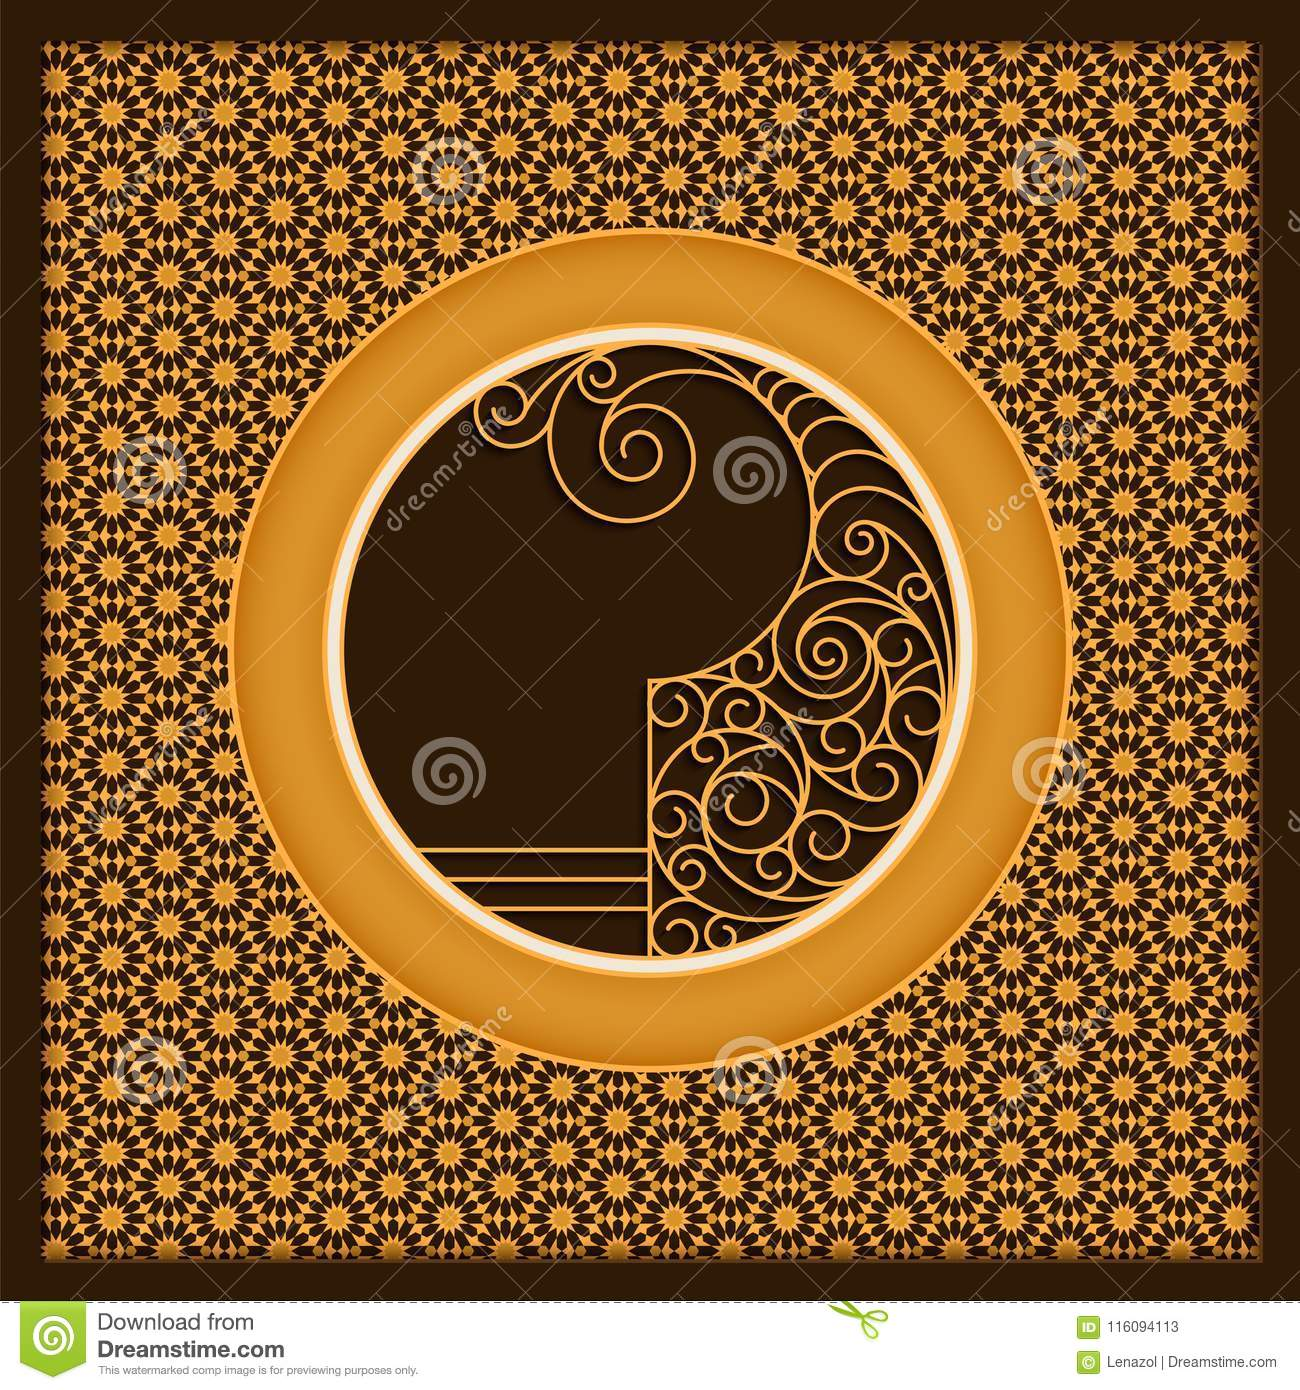 vector golden arabic card template with ornamented circles and